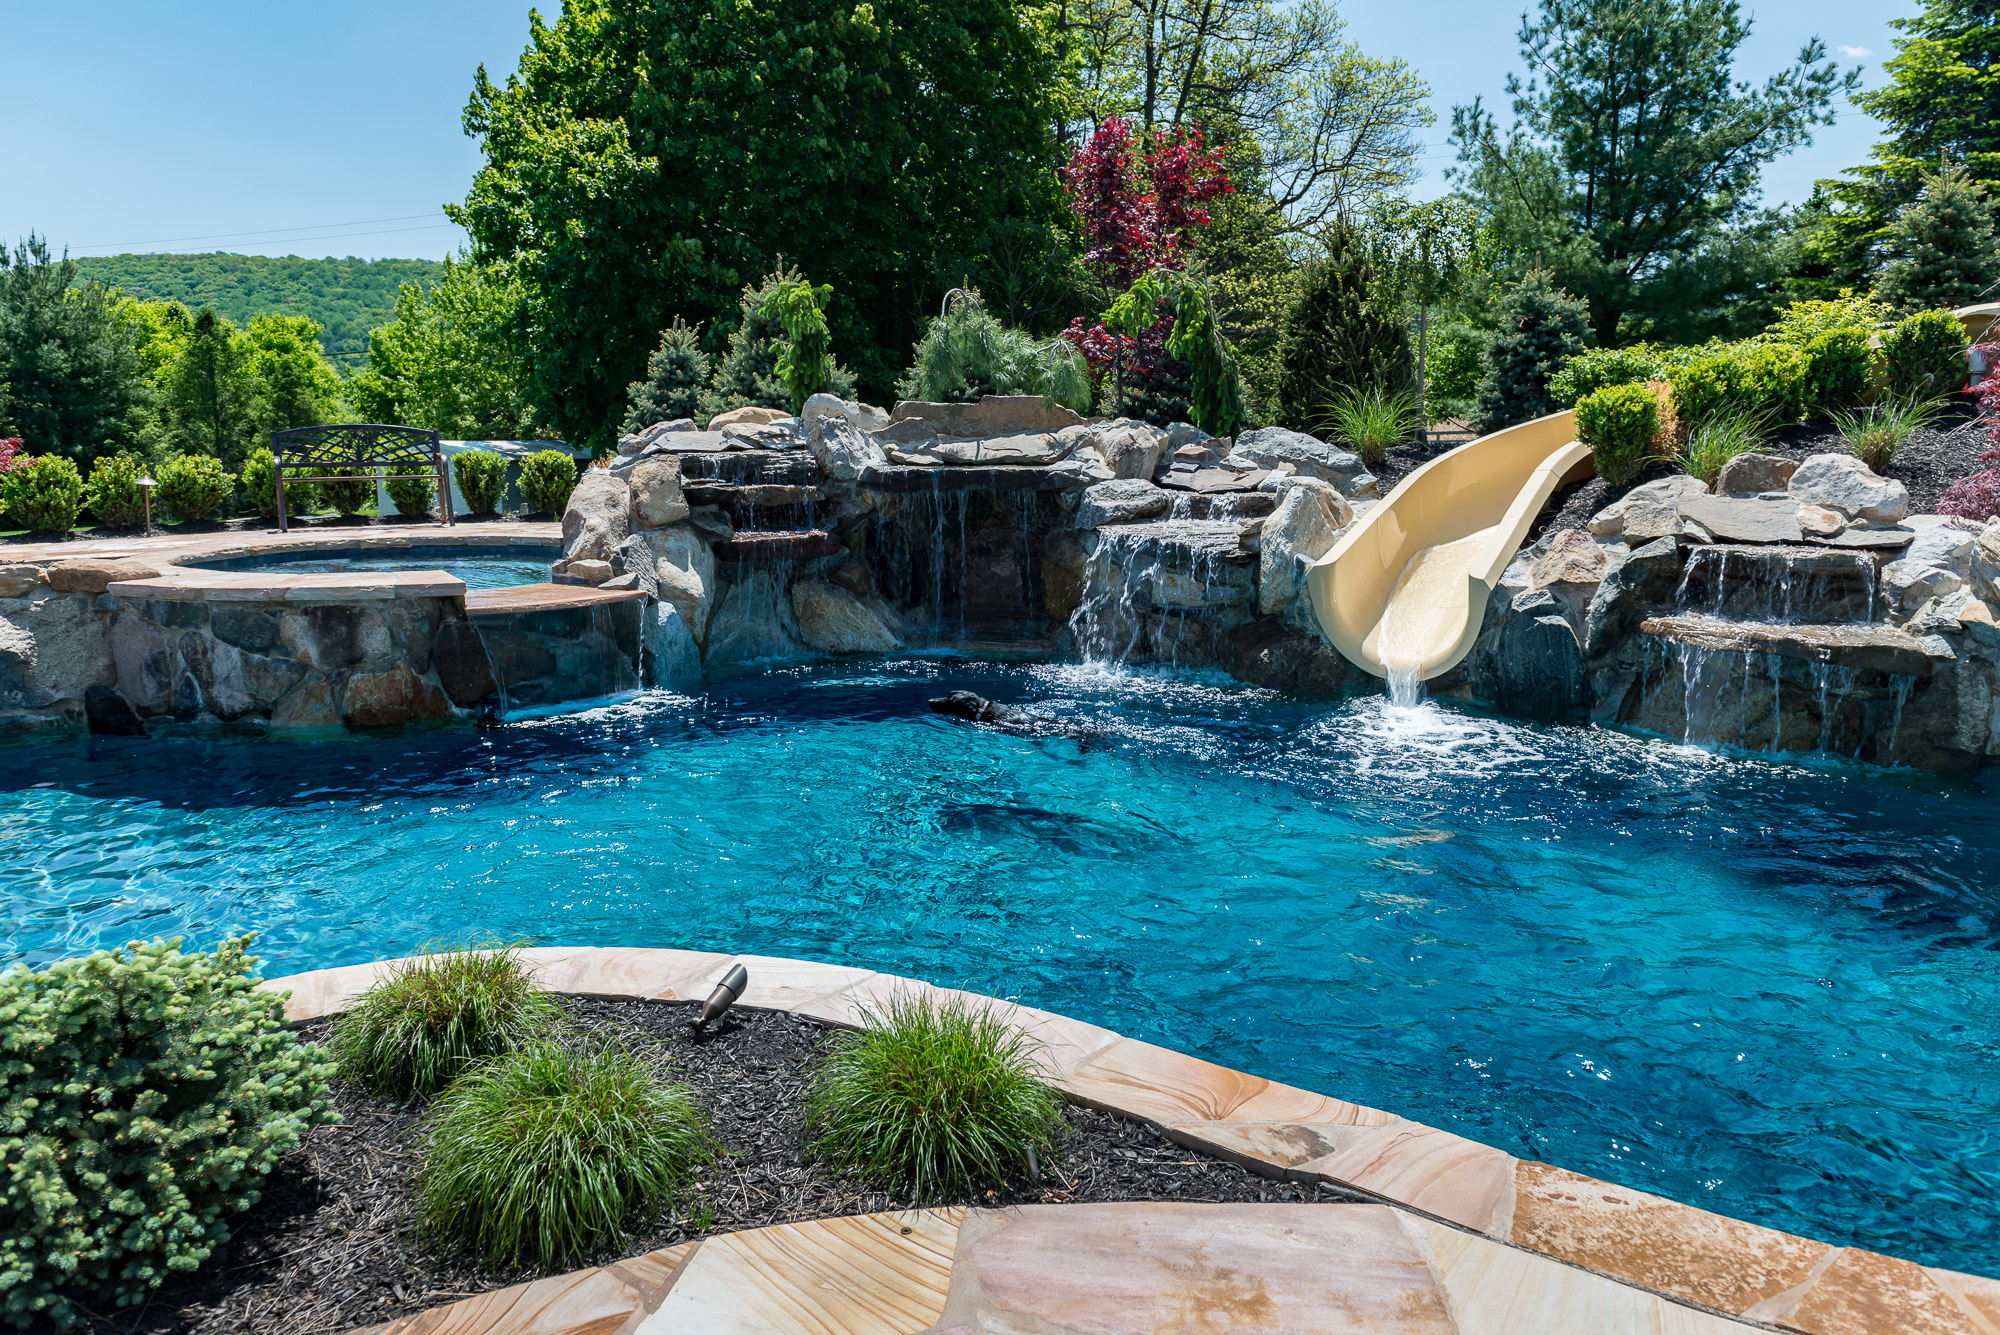 Bloomsbury nj custom inground swimming pool design for Pictures of inground pools